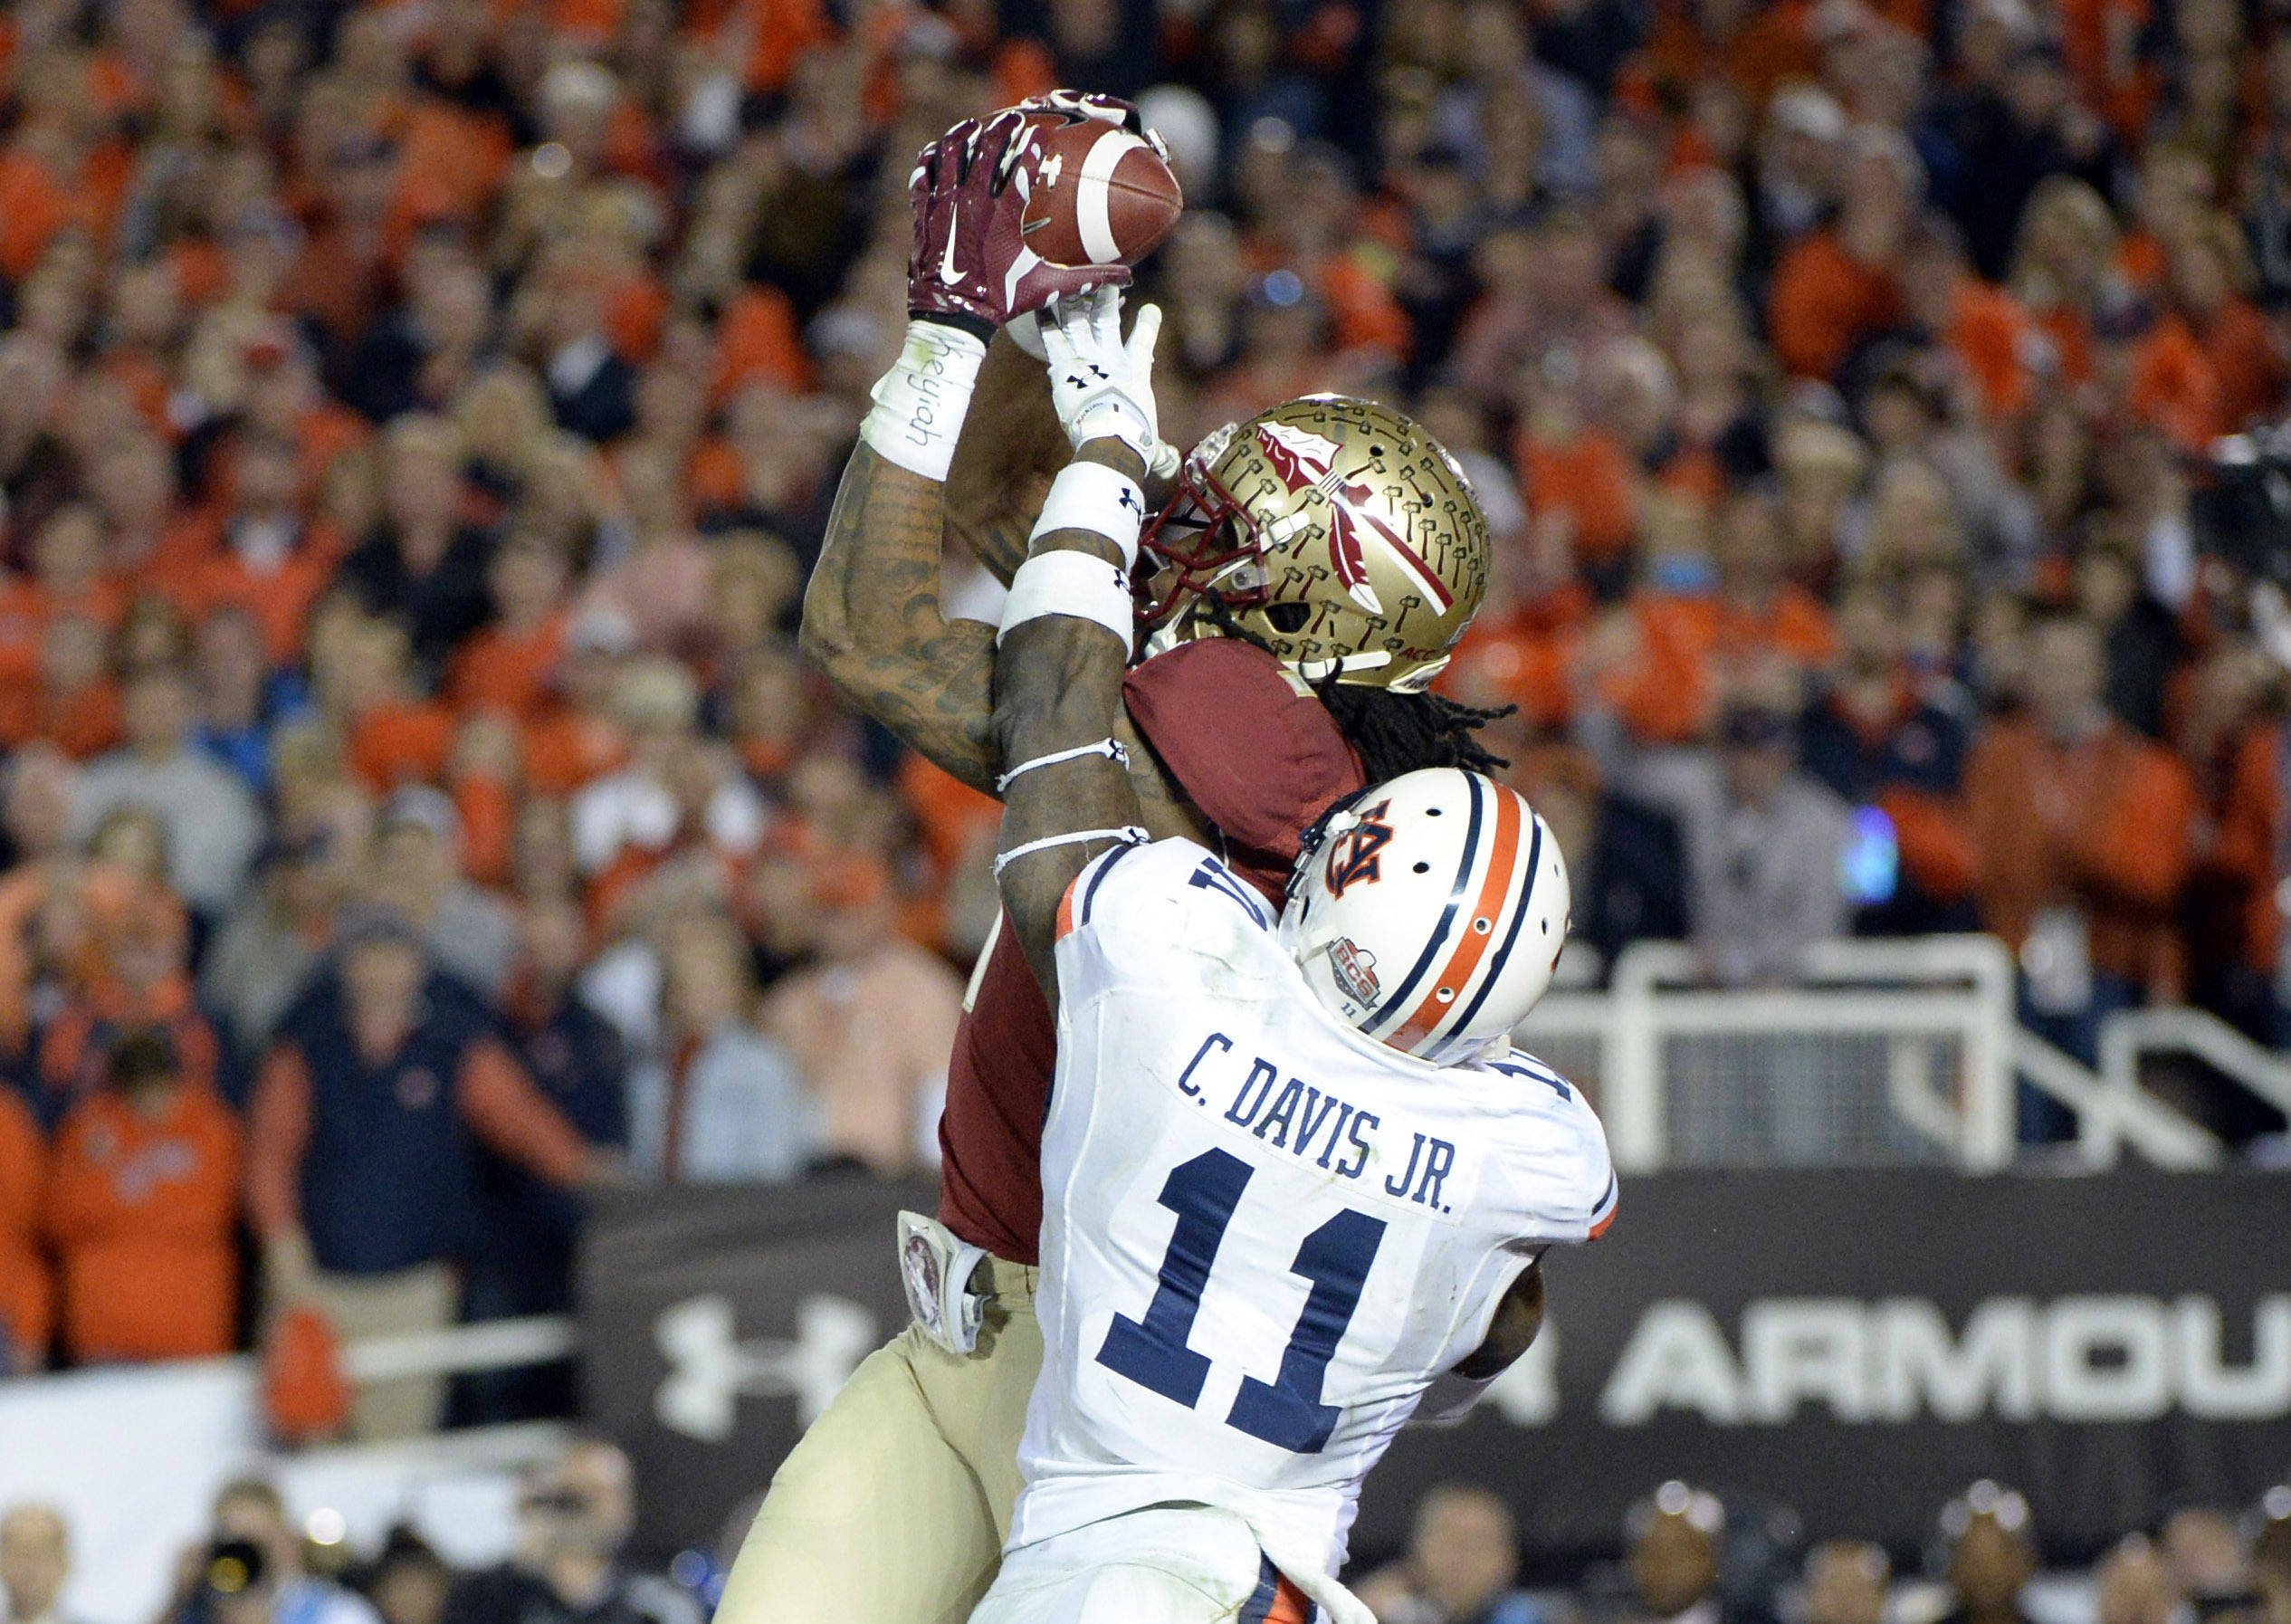 Jan 6, 2014; Pasadena, CA, USA; Florida State Seminoles wide receiver Kelvin Benjamin (1) catches a pass for a touchdown as Auburn Tigers cornerback Chris Davis (11) tackles during the second half of the 2014 BCS National Championship game at the Rose Bowl.  Mandatory Credit: Richard Mackson-USA TODAY Sports